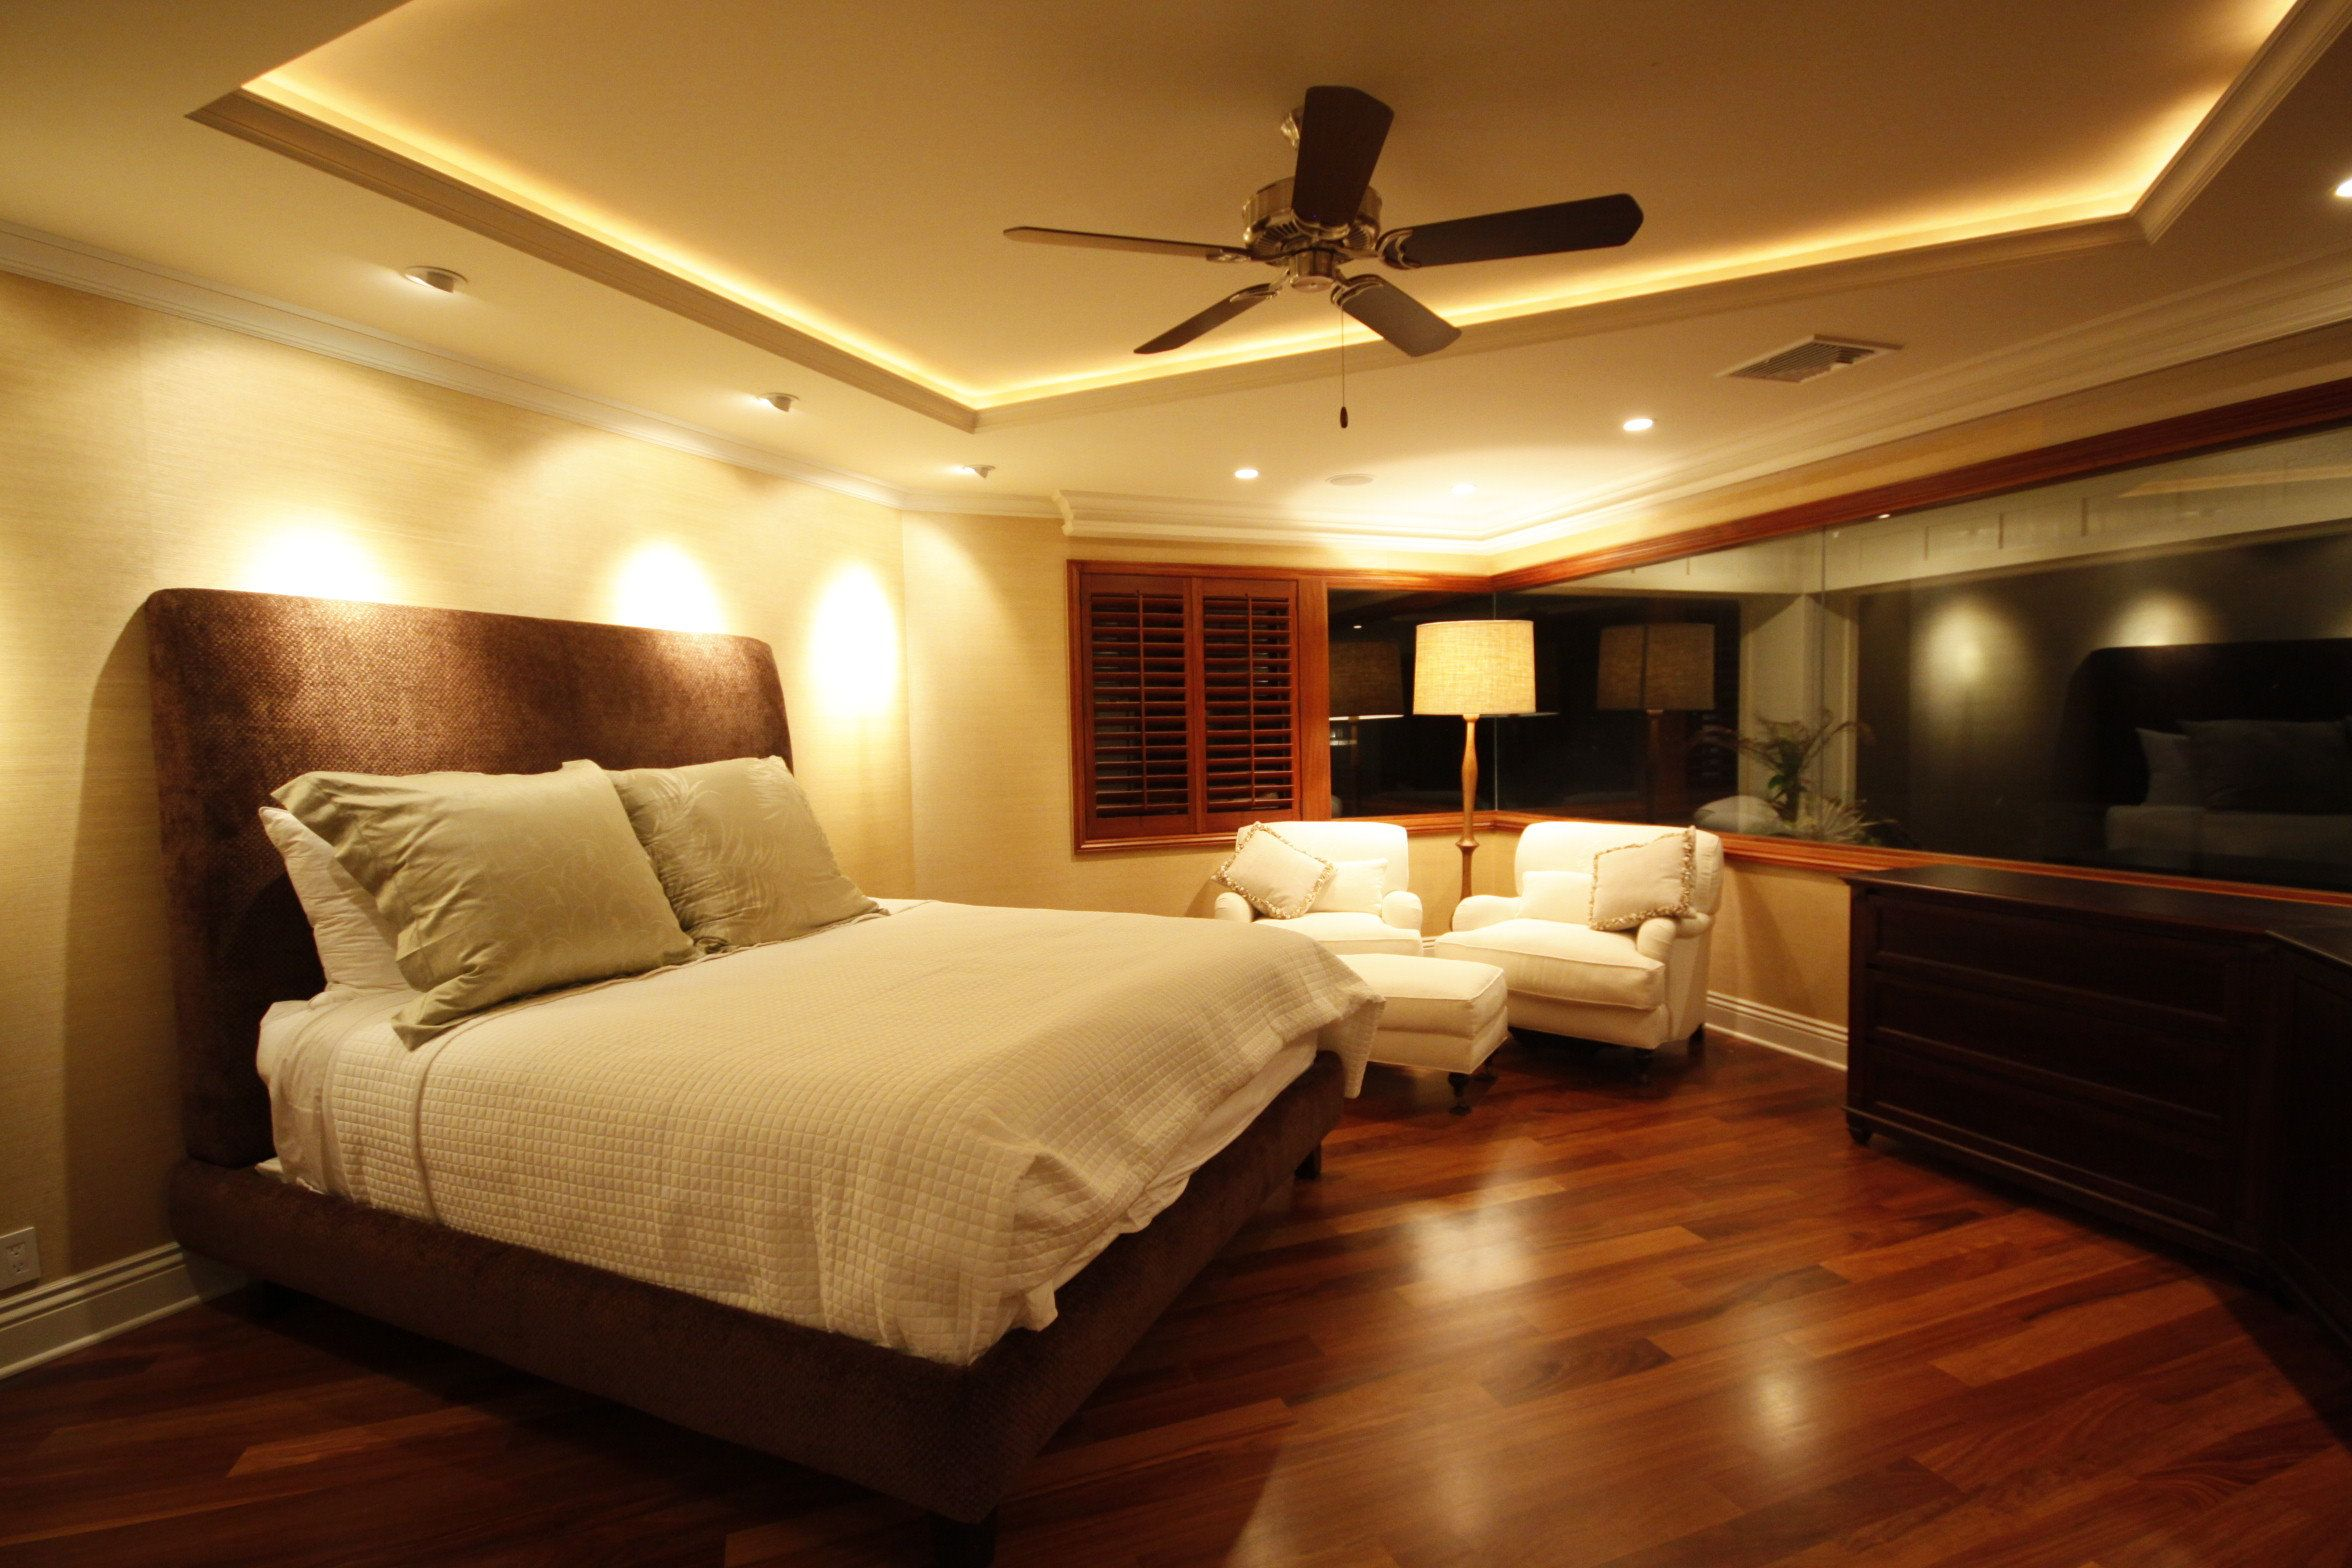 Appealing master bedroom modern decor with wooden floors also luxury master bed also sweet pair New modern masters bedroom